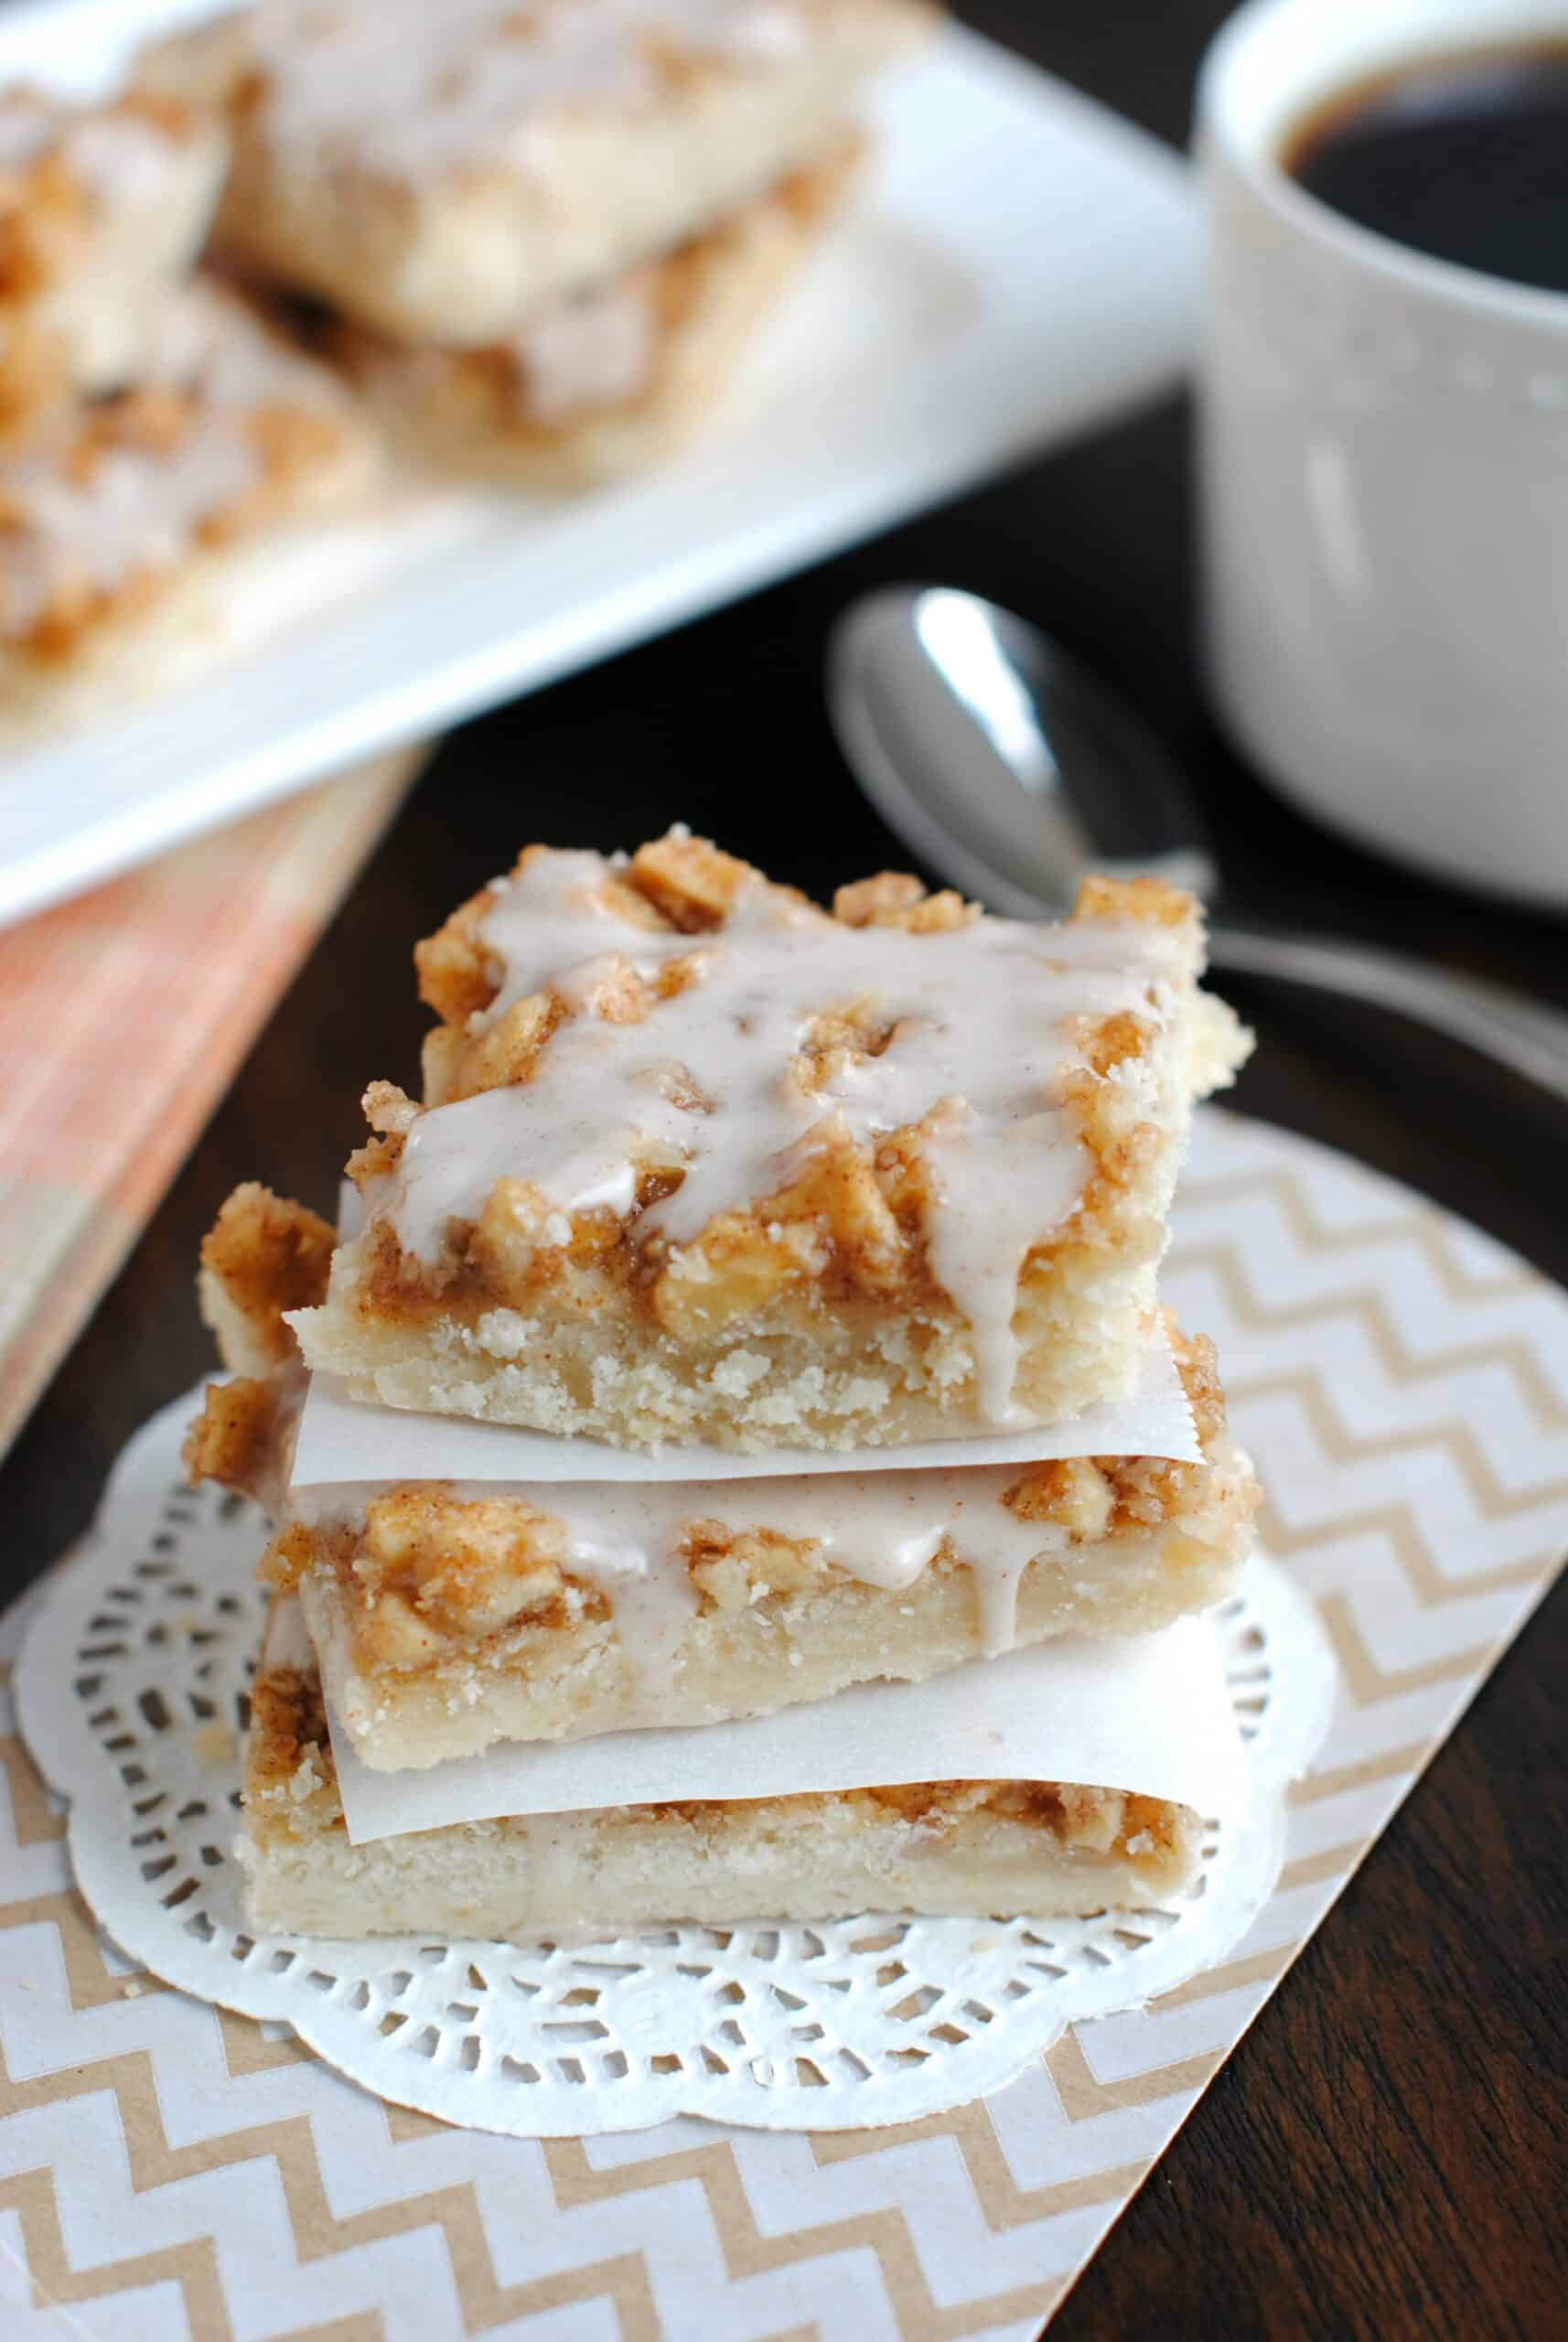 Stack of shortbread apple bars on a white doily with cup of coffee on side.